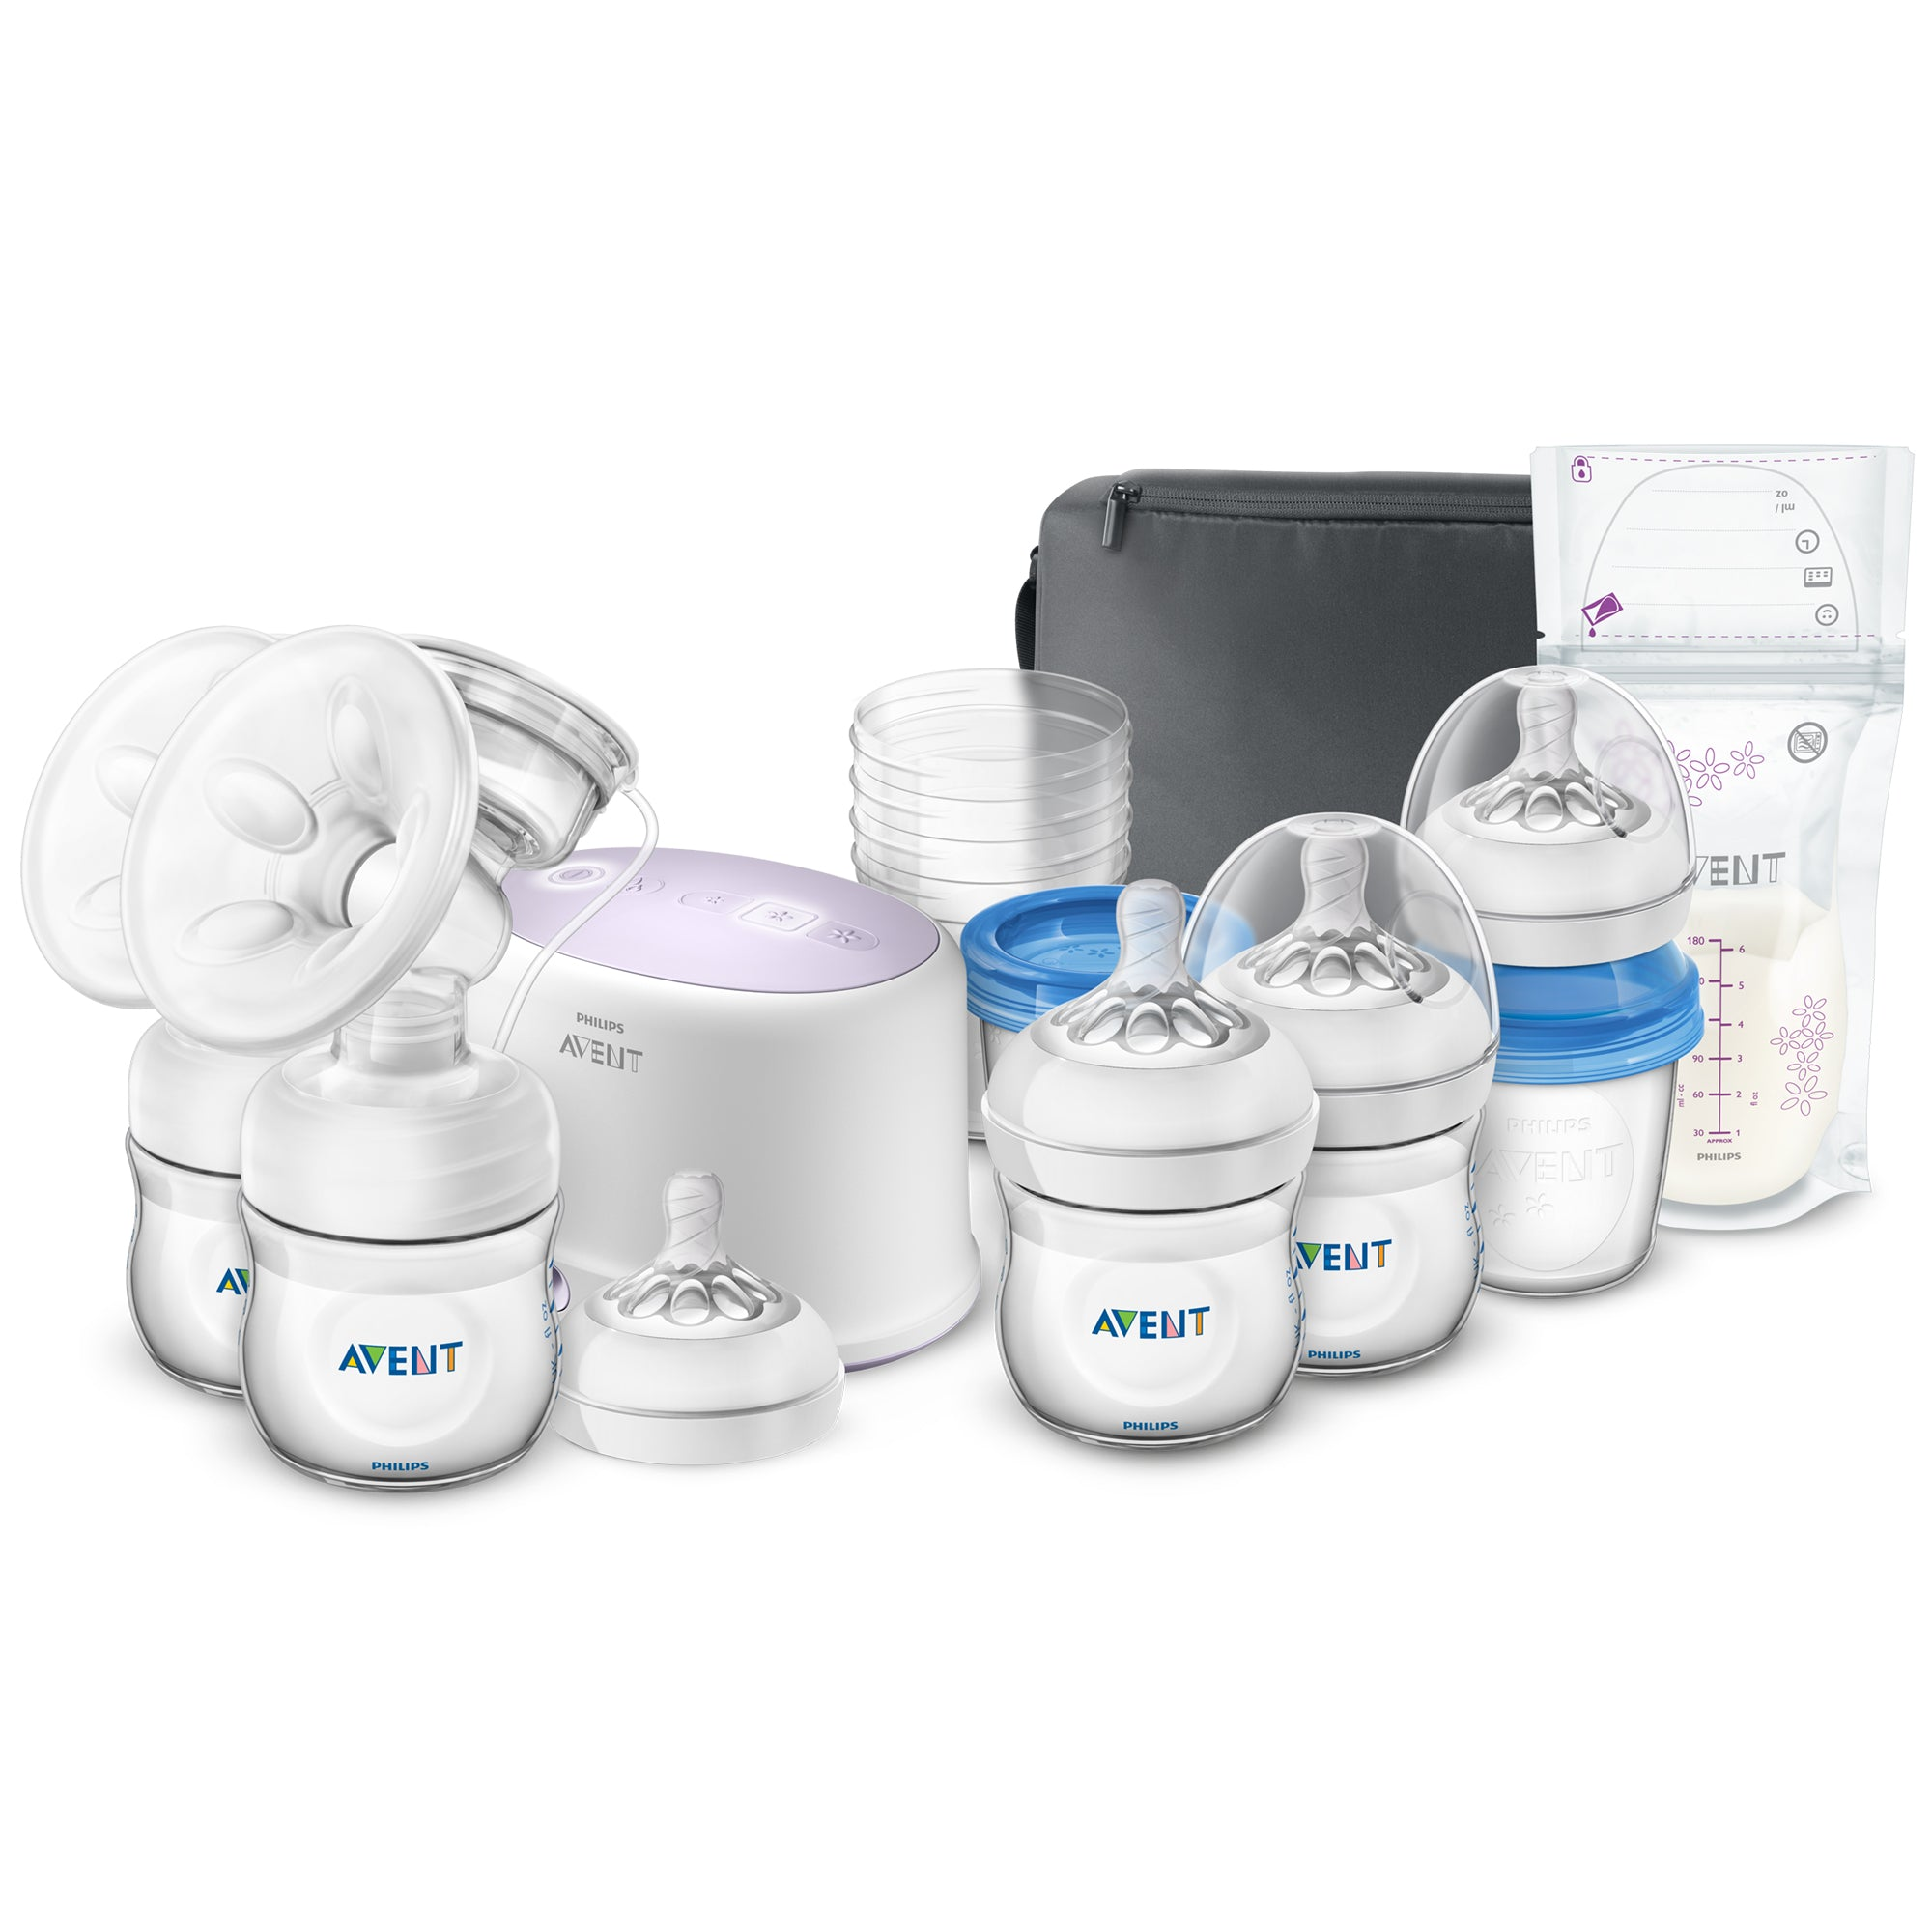 Philips AVENT NATURAL DoubleElectric Breast Pump